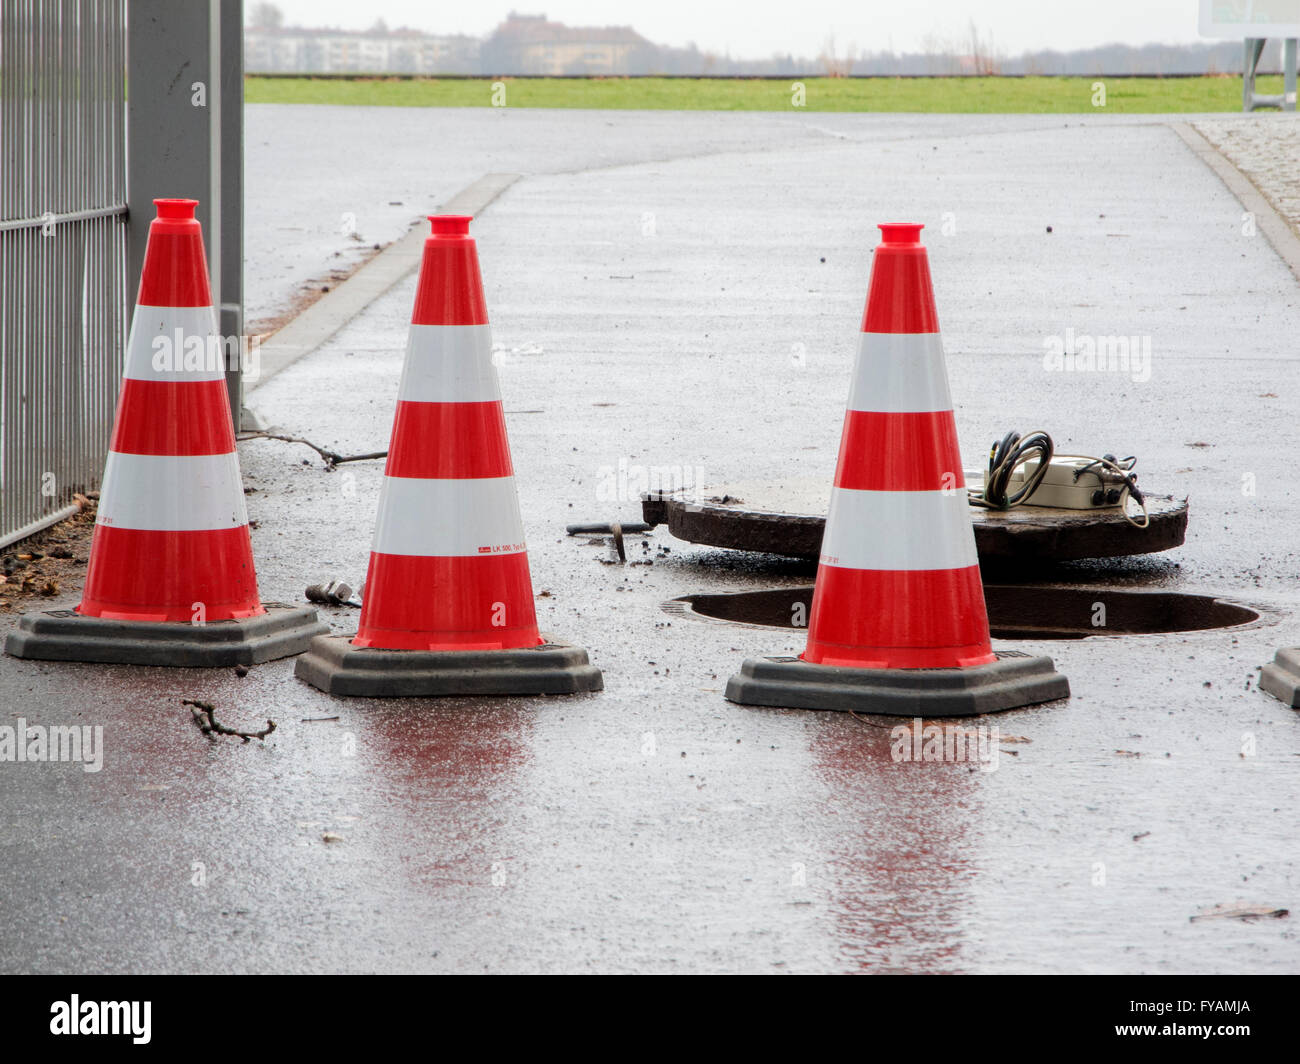 Berlin, Germany - March 30, 2016: three pylons as protection against water meter shaft on the to the airfield Tempelhof - Stock Image